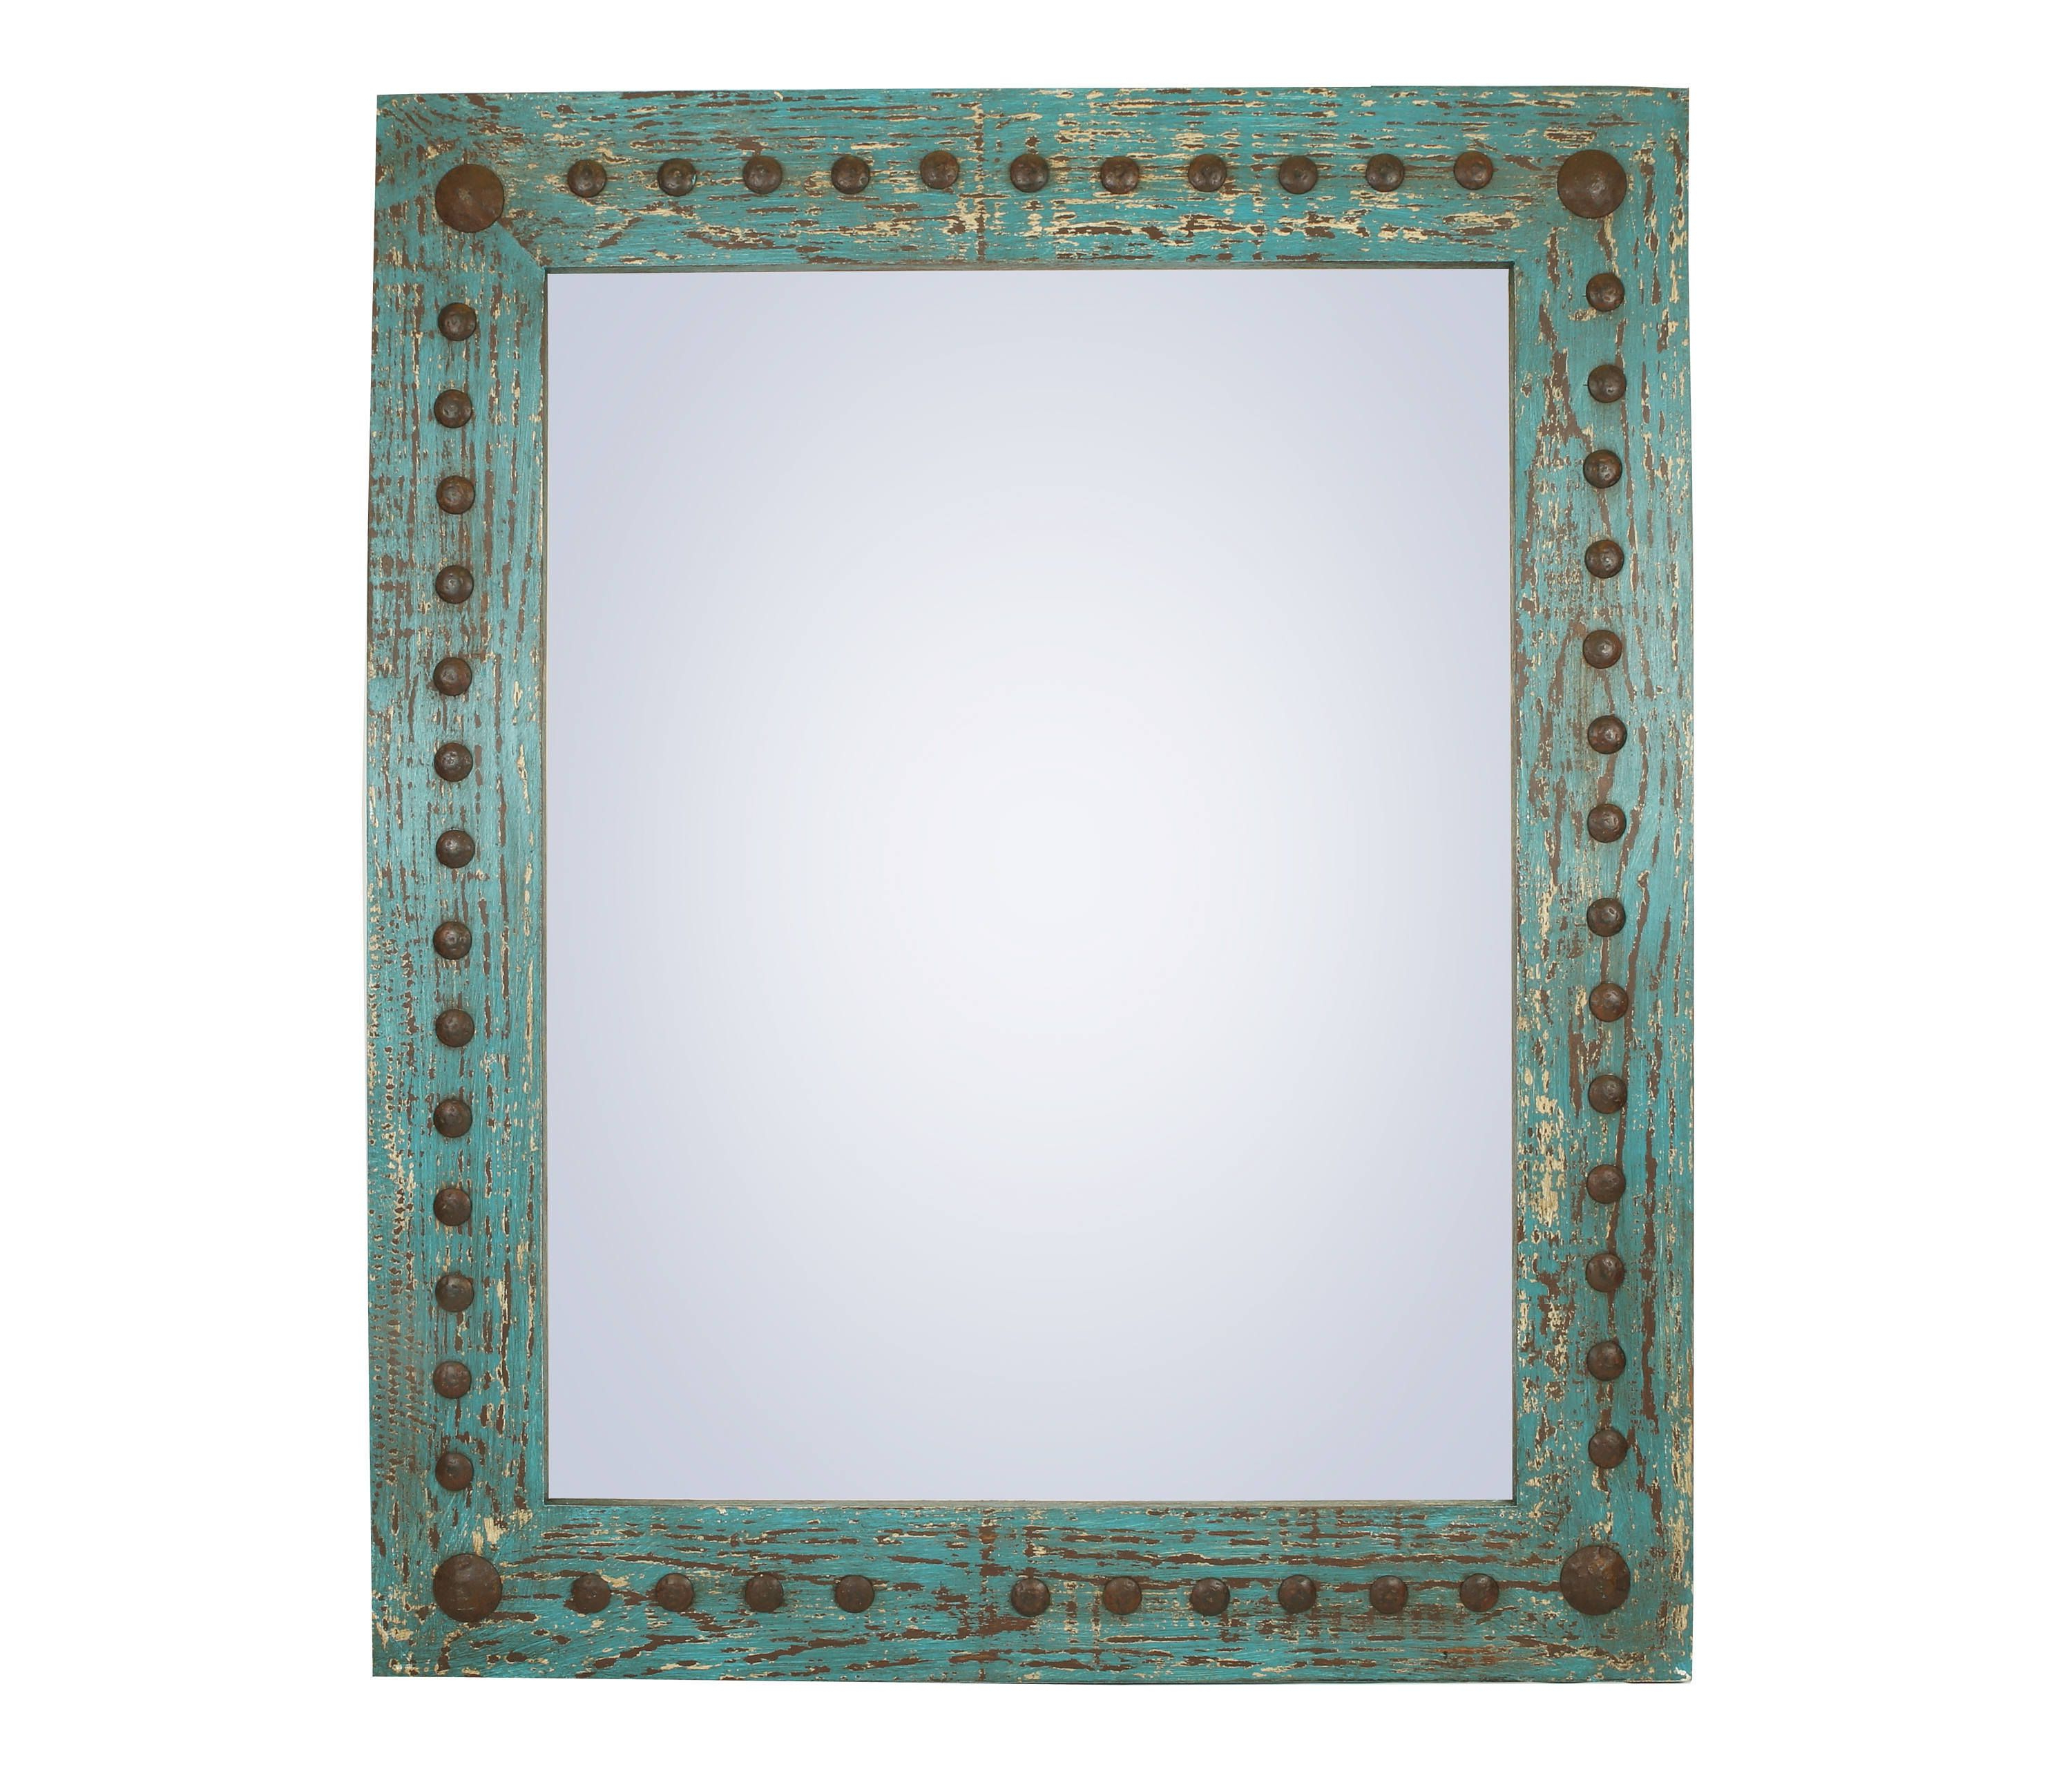 Mexican Wall Mirrors Inside Popular Puebla Rustic Mirror Wood Mexican 34x34 Rustic Distressed (View 6 of 20)